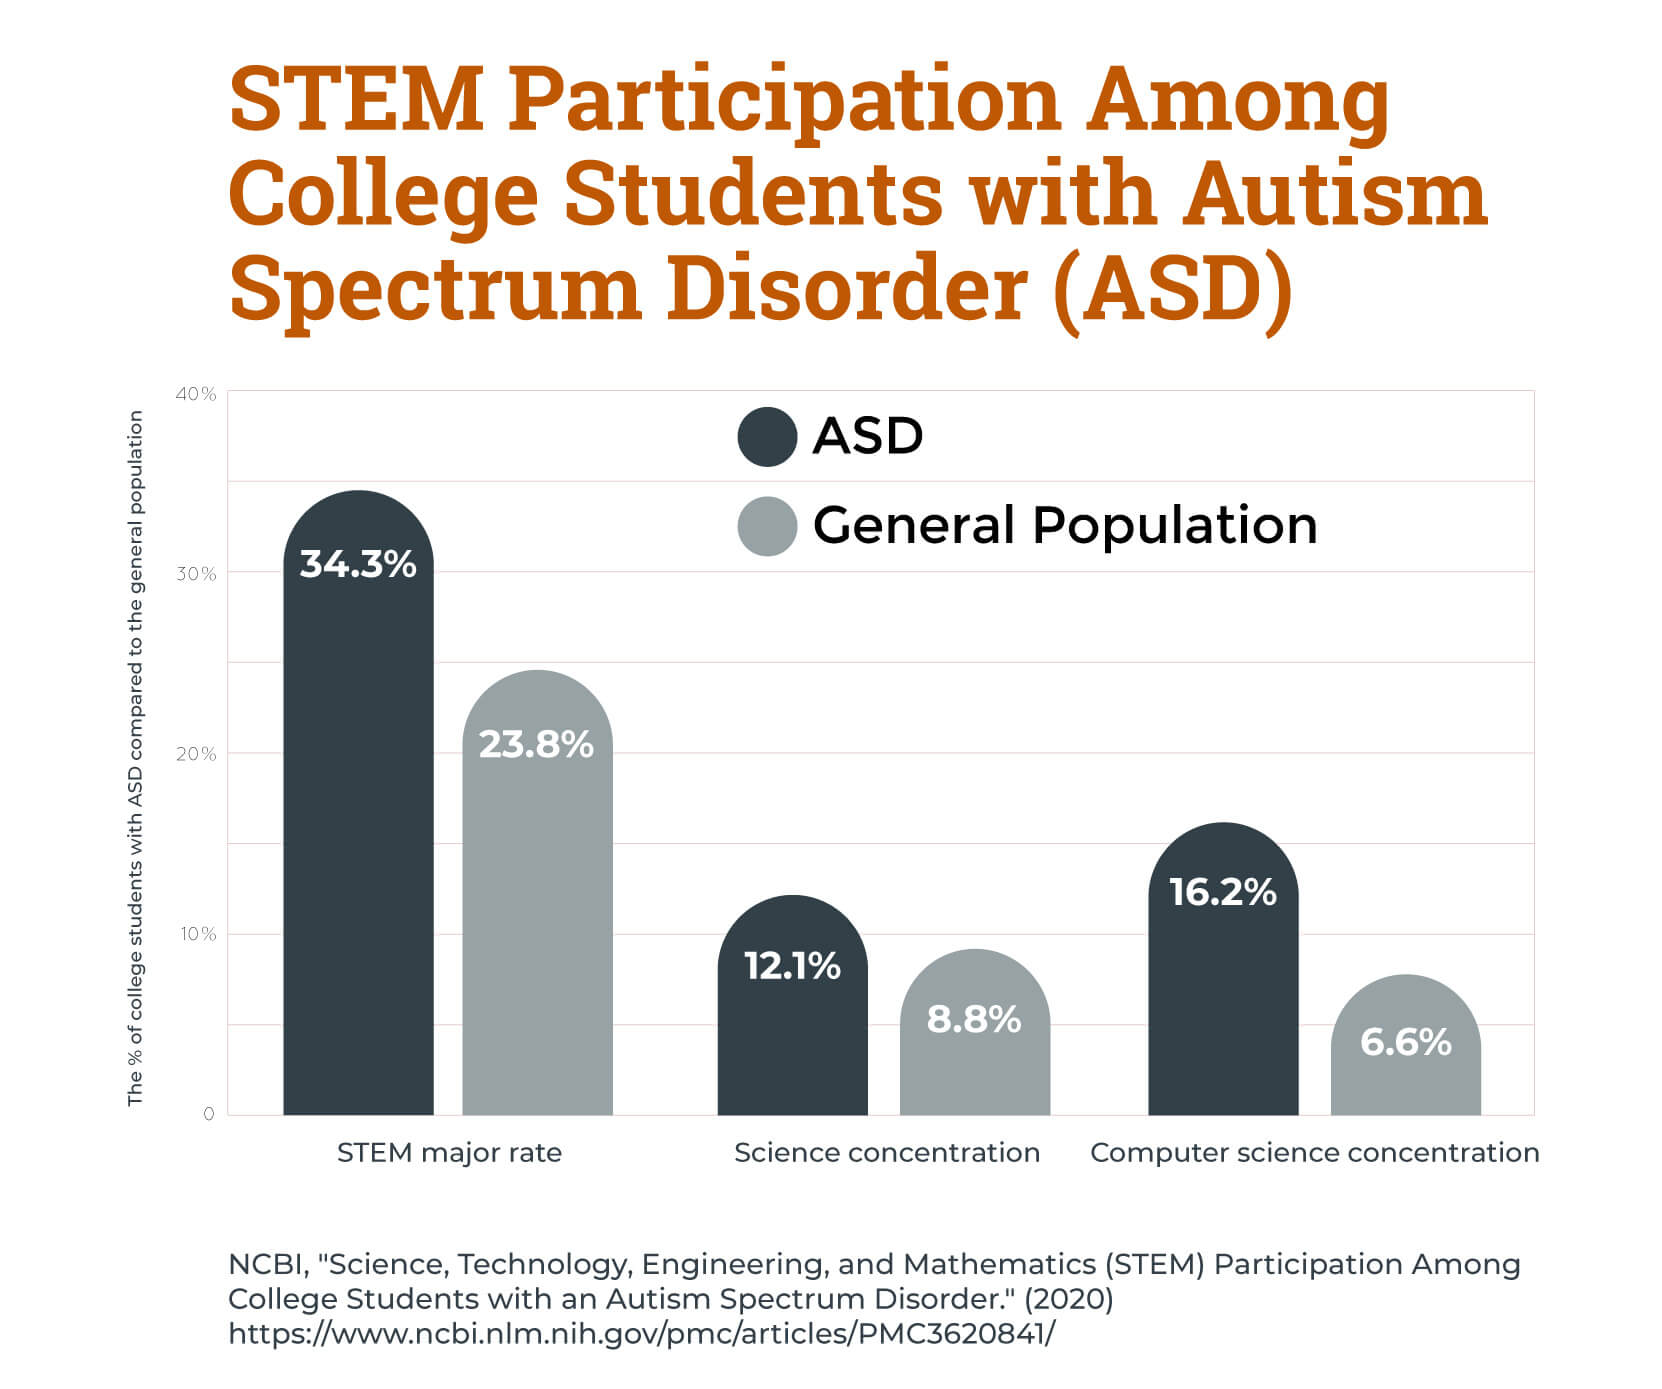 A chart showing STEM participation rates among college students with autism compared to the general population.